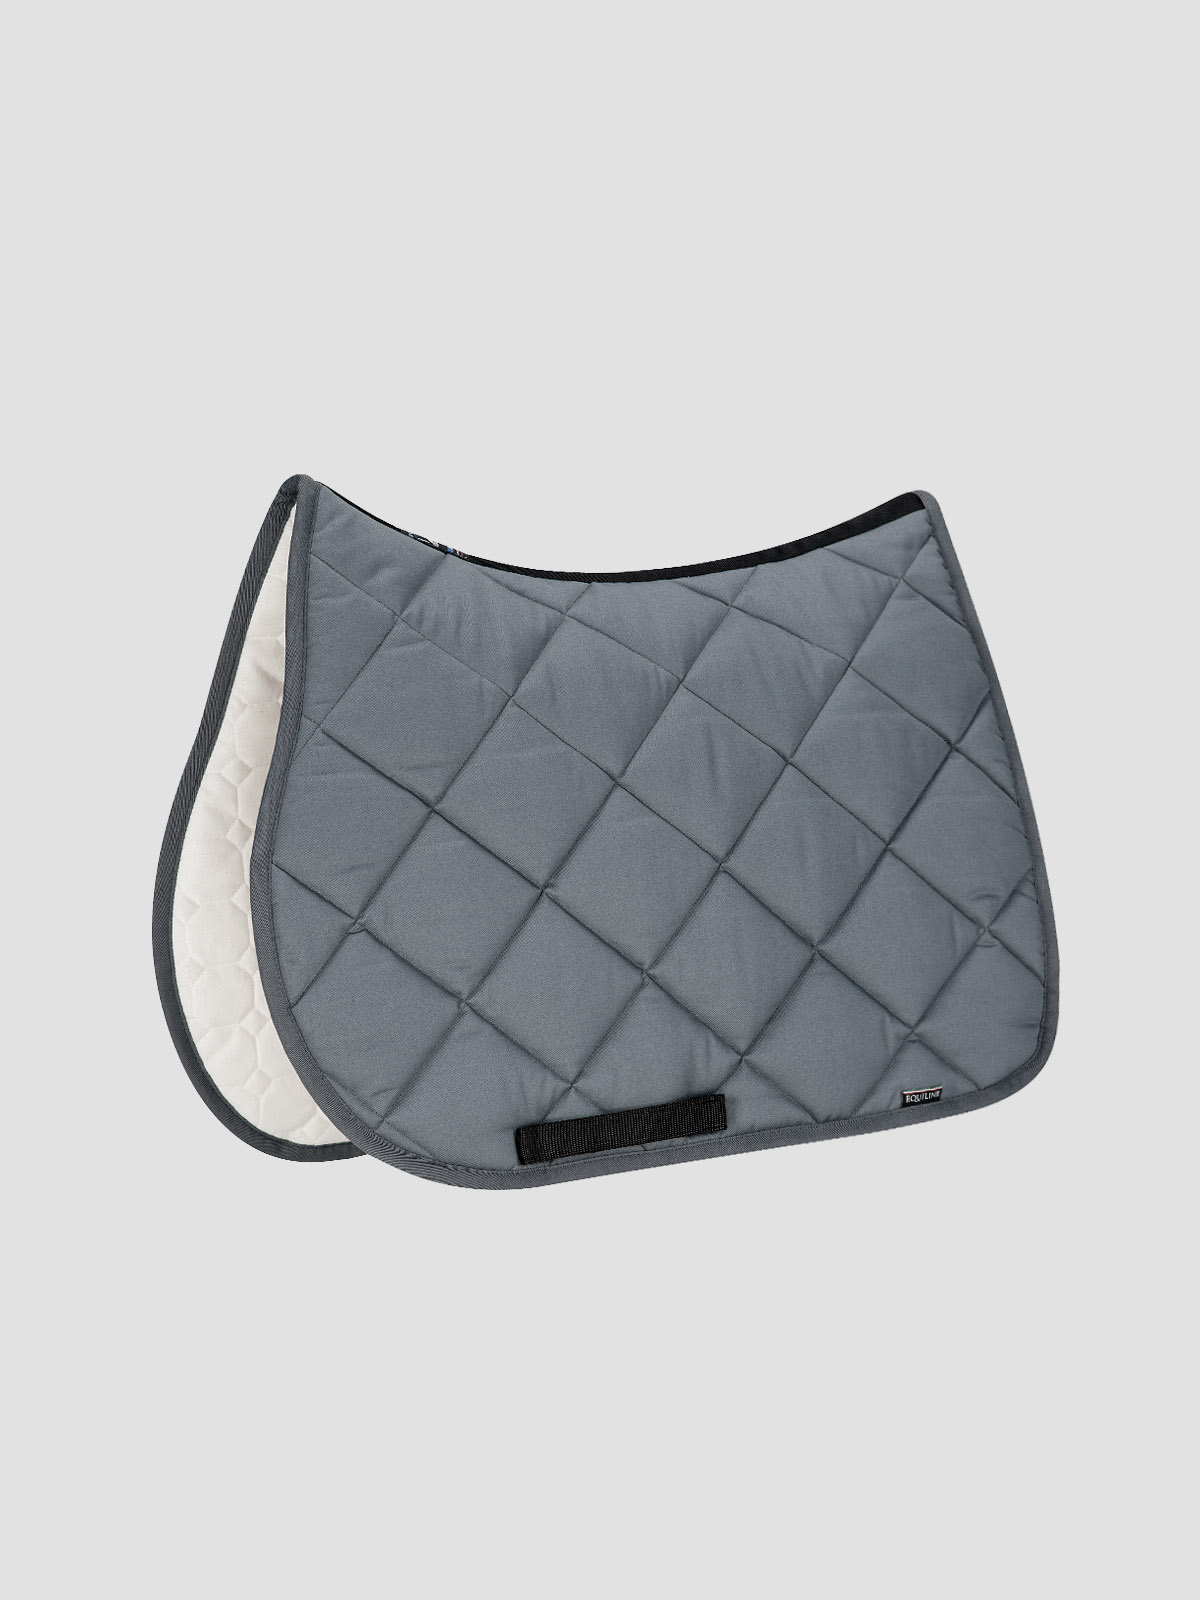 ROMBO - Rombo Saddle Pad 7